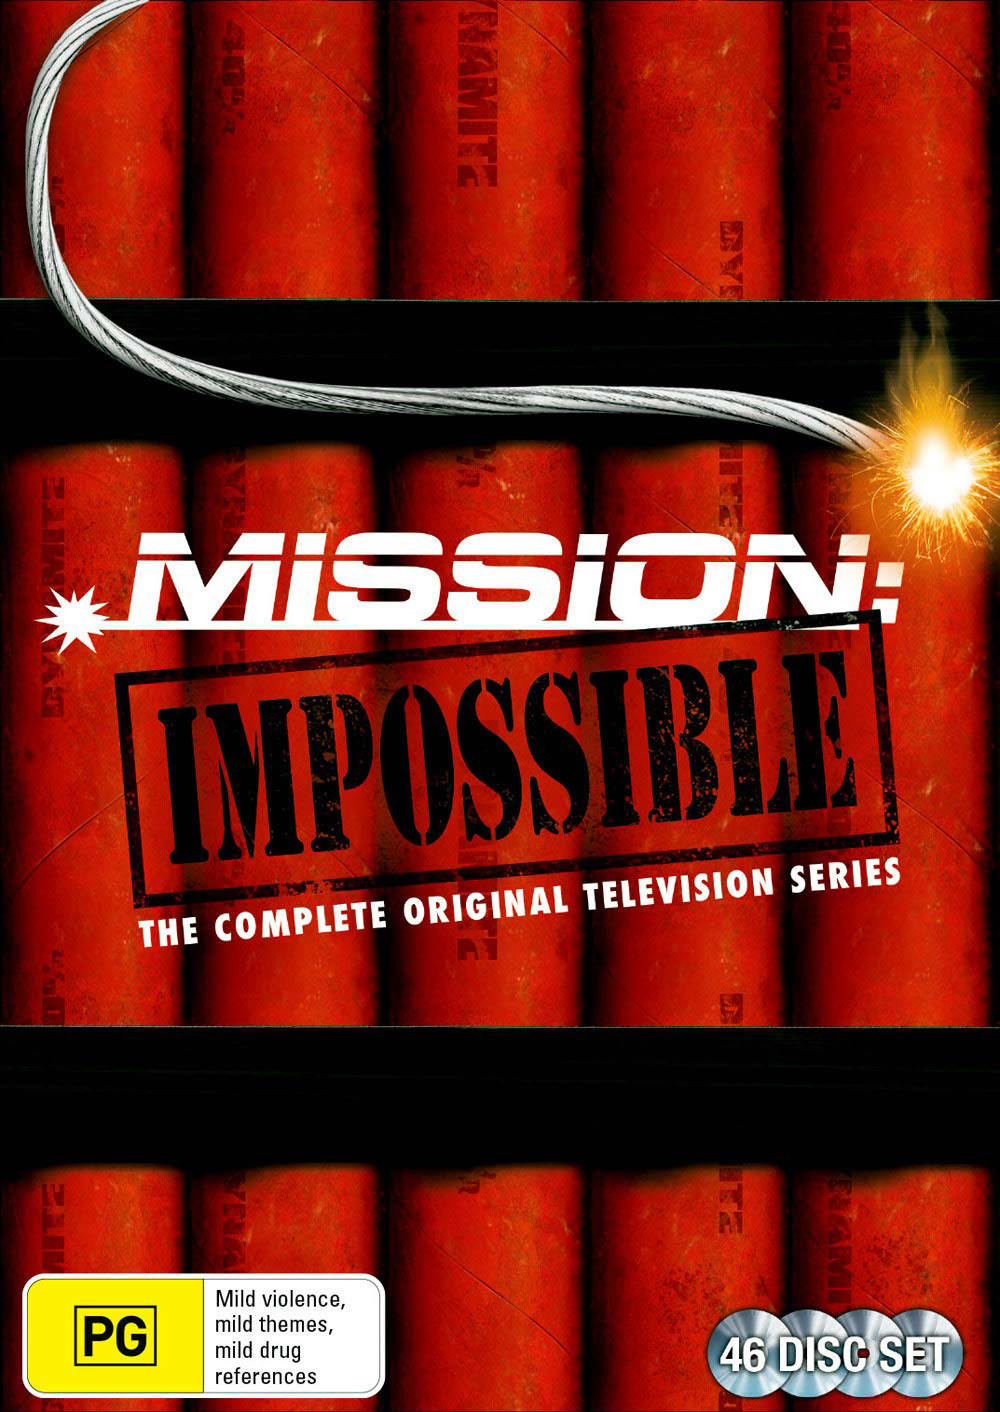 Mission Impossible: The Original Television Series (Box Set) [DVD]